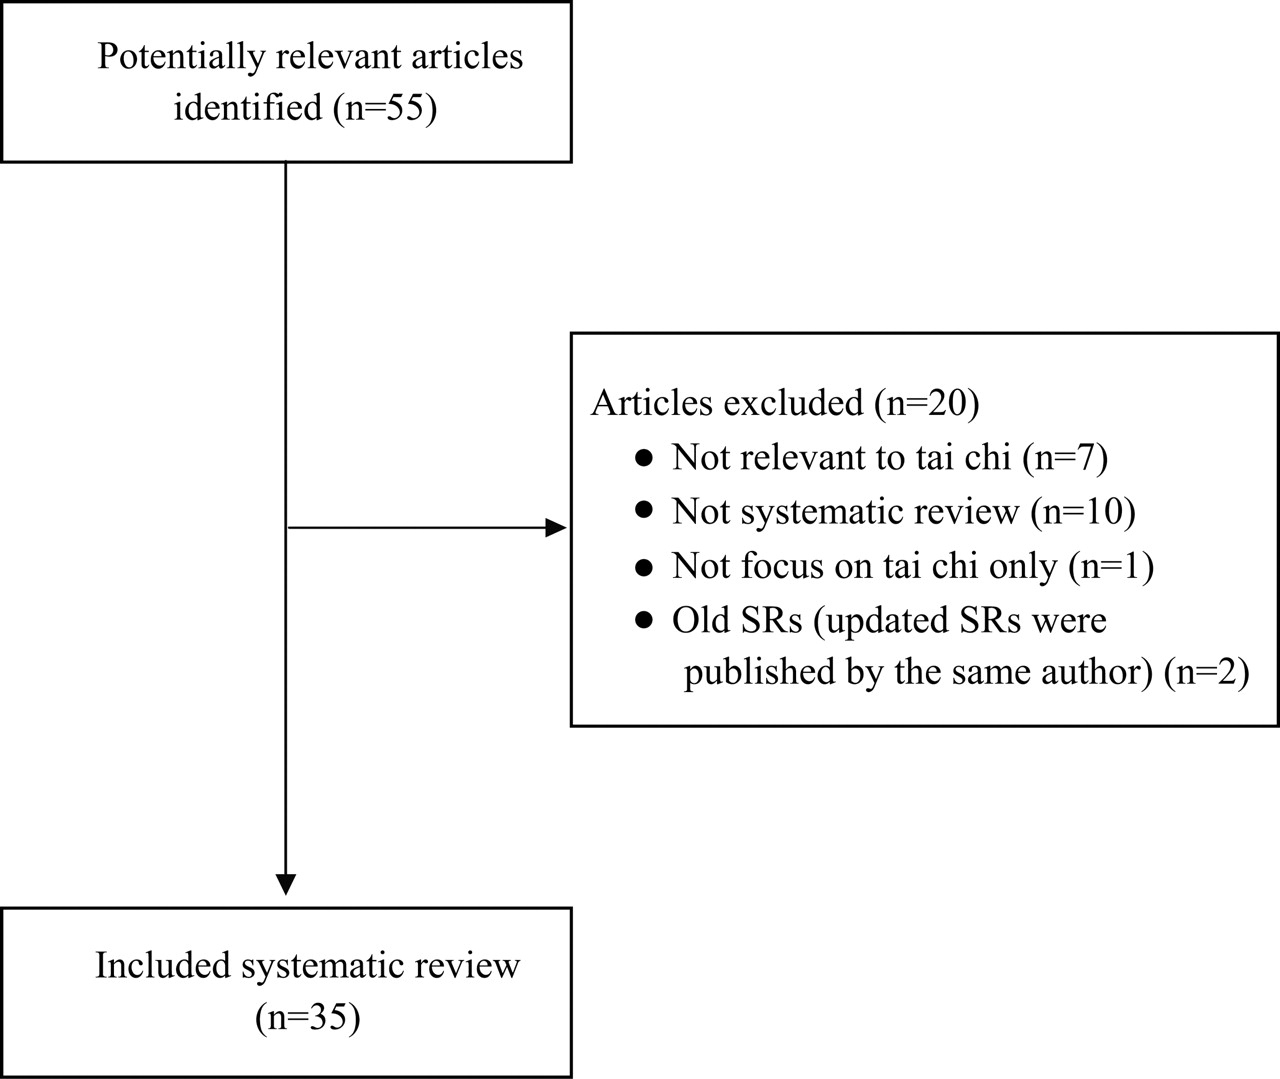 Systematic Reviews Of Tai Chi An Overview British Journal Process Flow Diagram Powerpoint 2010 Figure 1 Chart